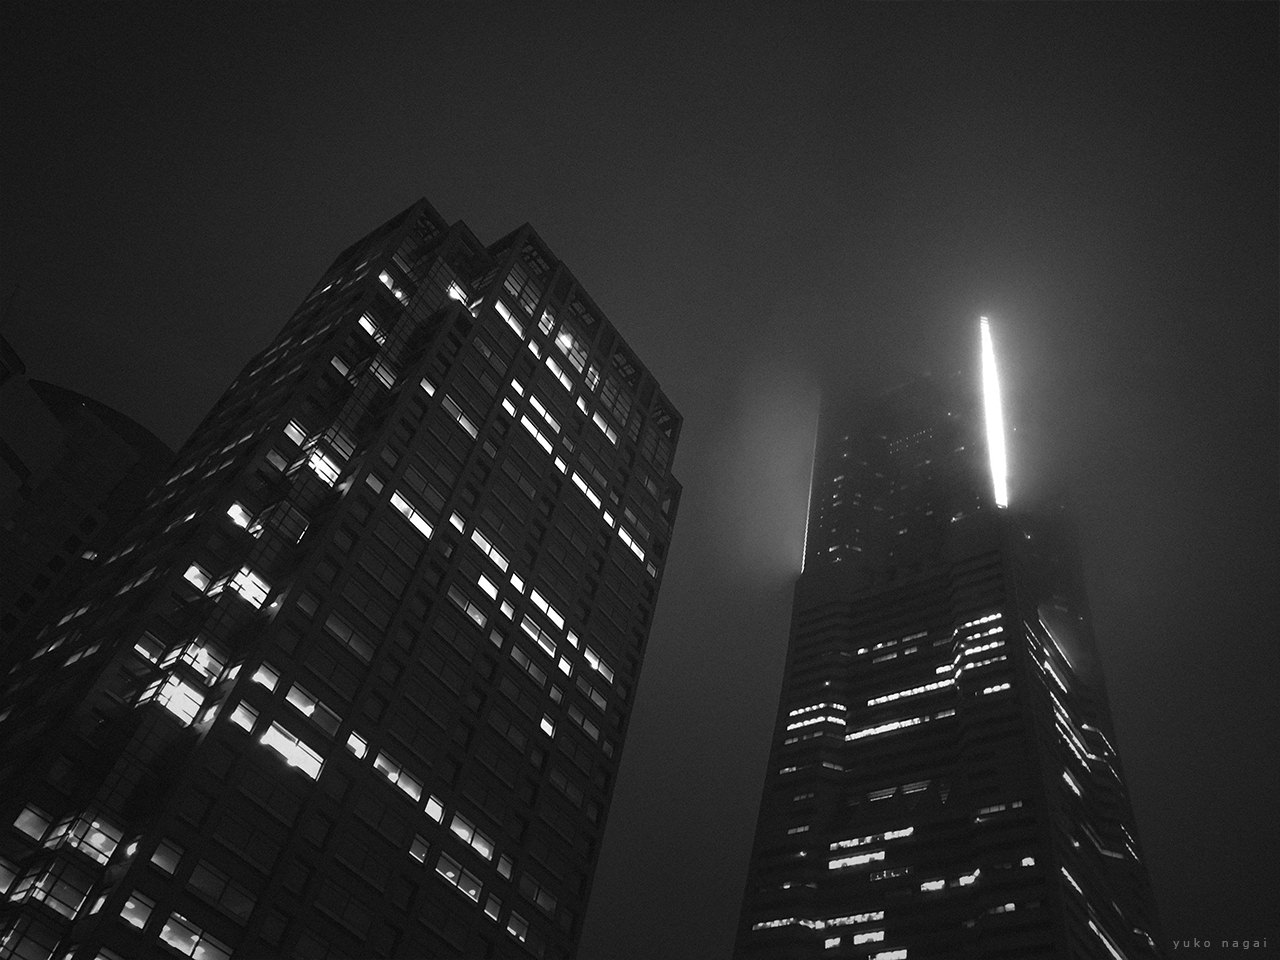 City buildings at night.